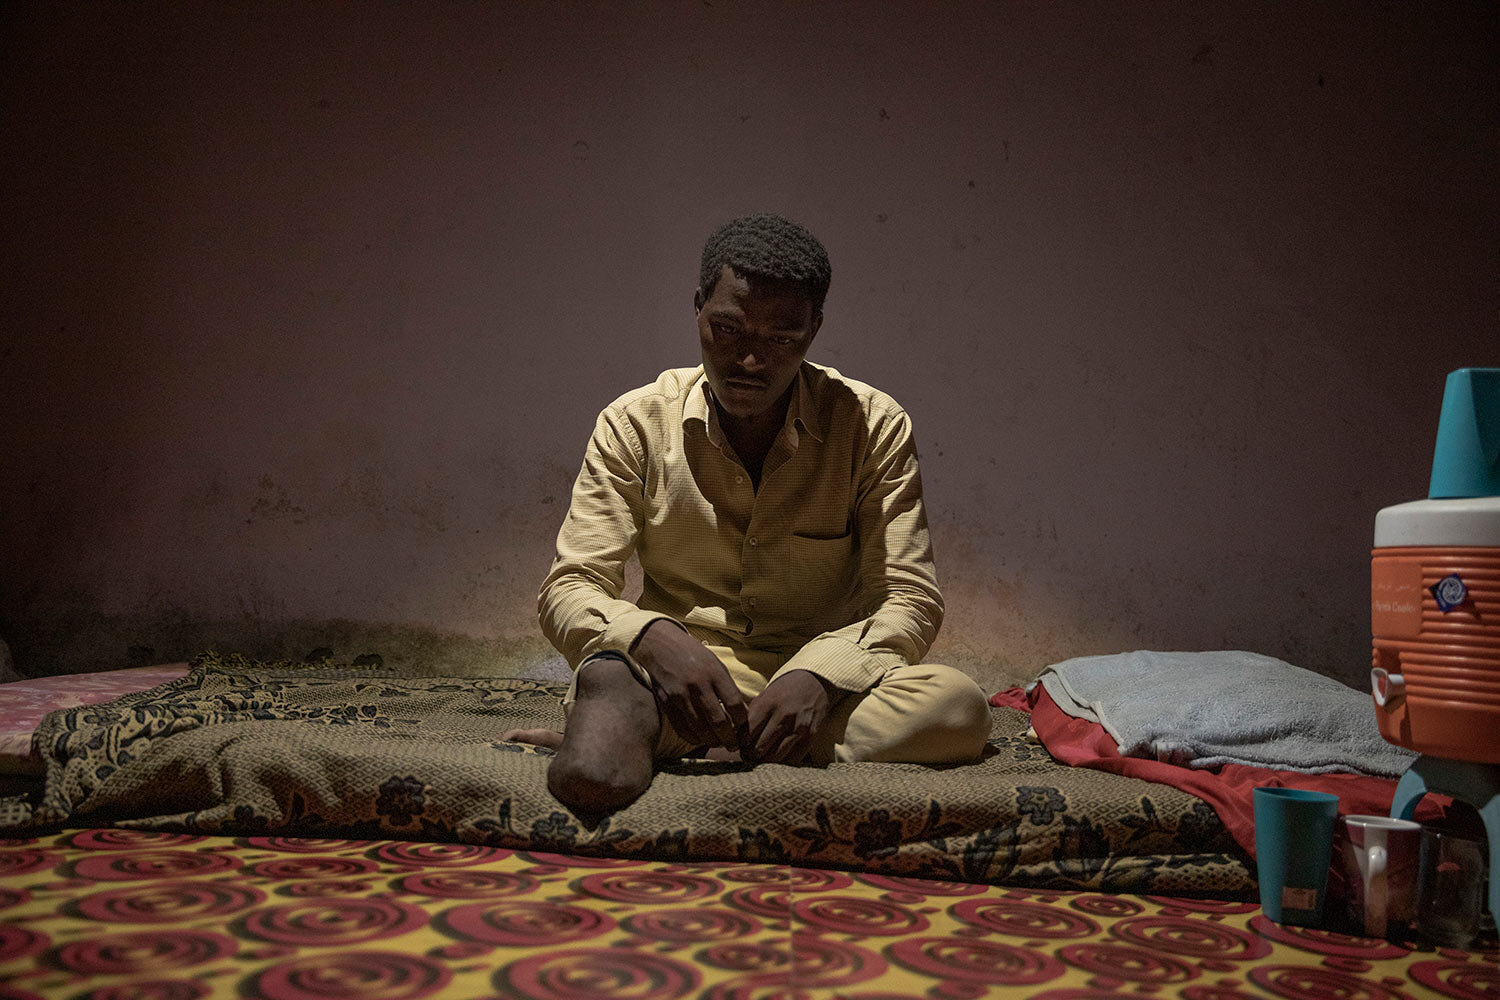 17-year-old Ethiopian migrant Abdul-Rahman Taha, shows his amputated leg, at his home, in Basateen, a district of Aden, Yemen. (AP Photo/Nariman El-Mofty)